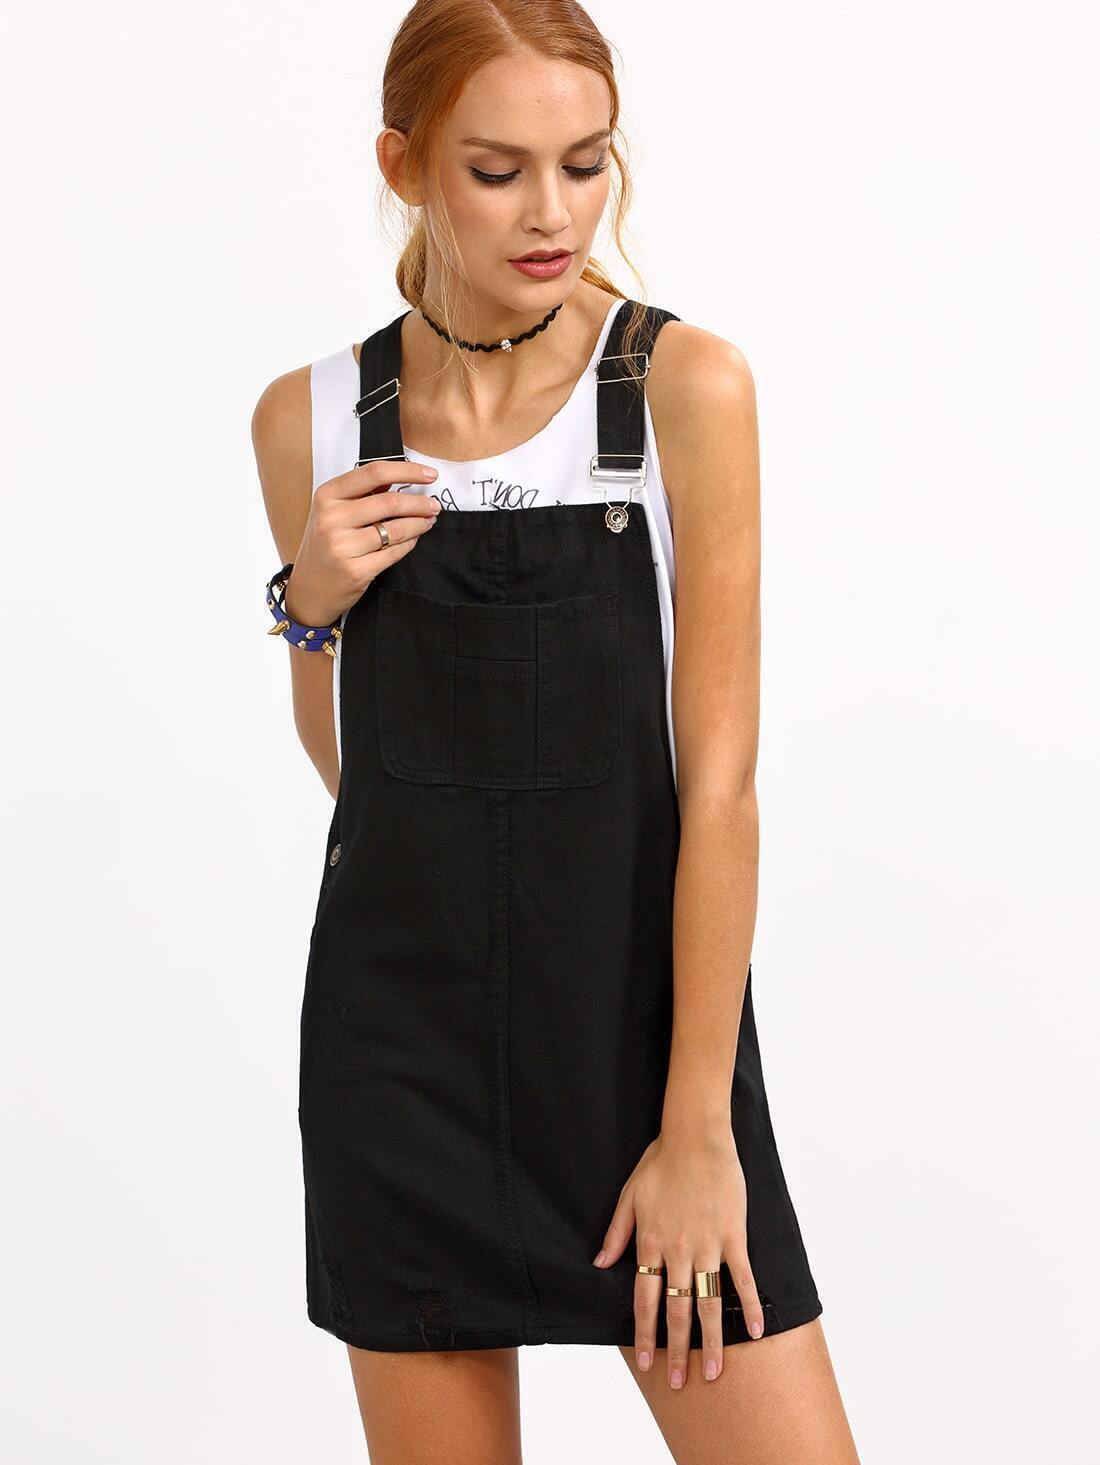 Ripped Black Denim Overall Dress. Pin It - Ripped Black Denim Overall Dress EmmaCloth-Women Fast Fashion Online